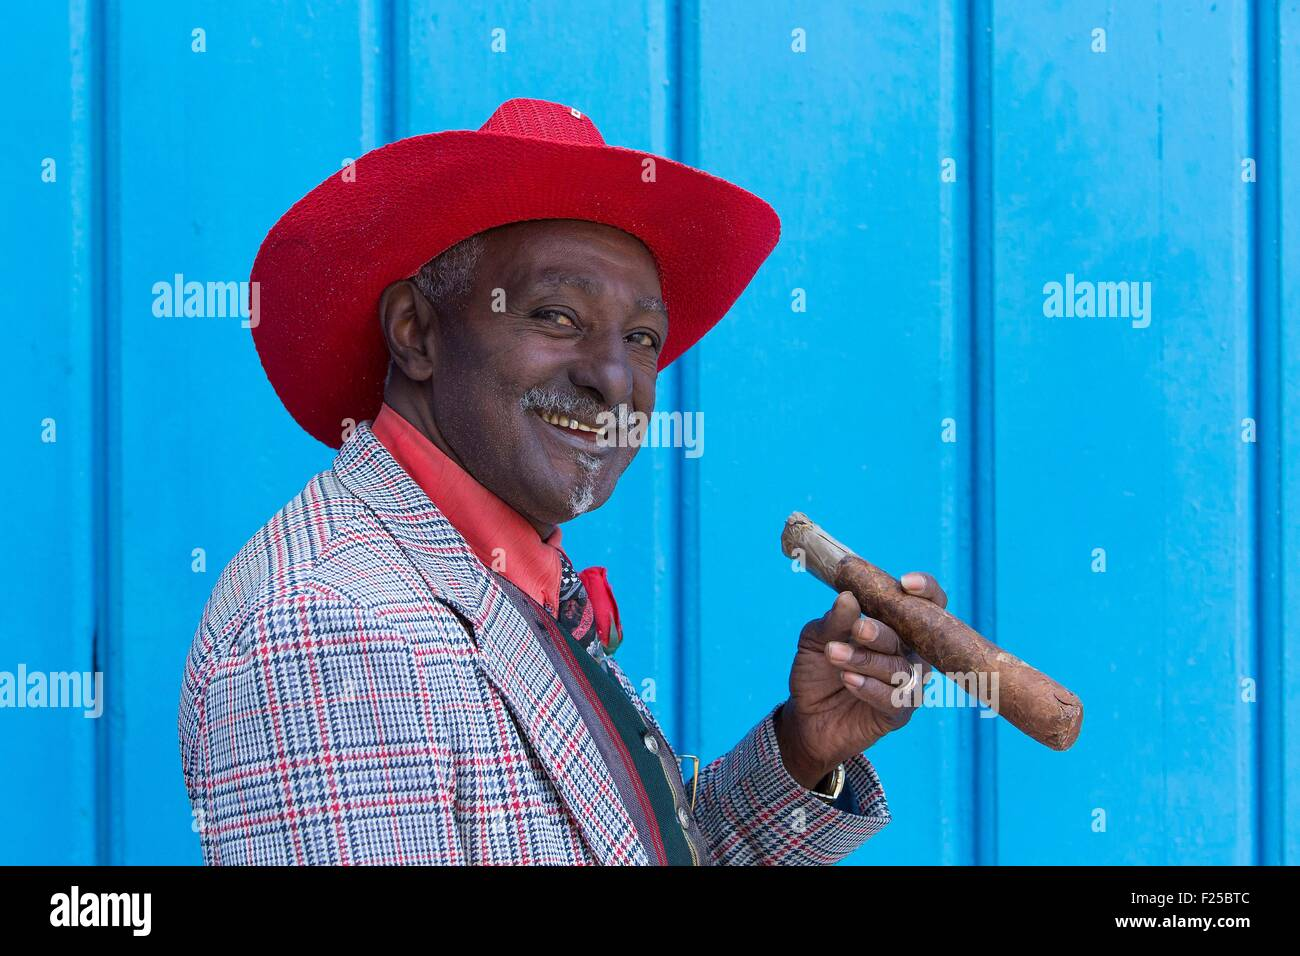 Cuba, Ciudad de la Habana province, Habana Vieja district listed as World Heritage by UNESCO, La Havana, man dressed - Stock Image